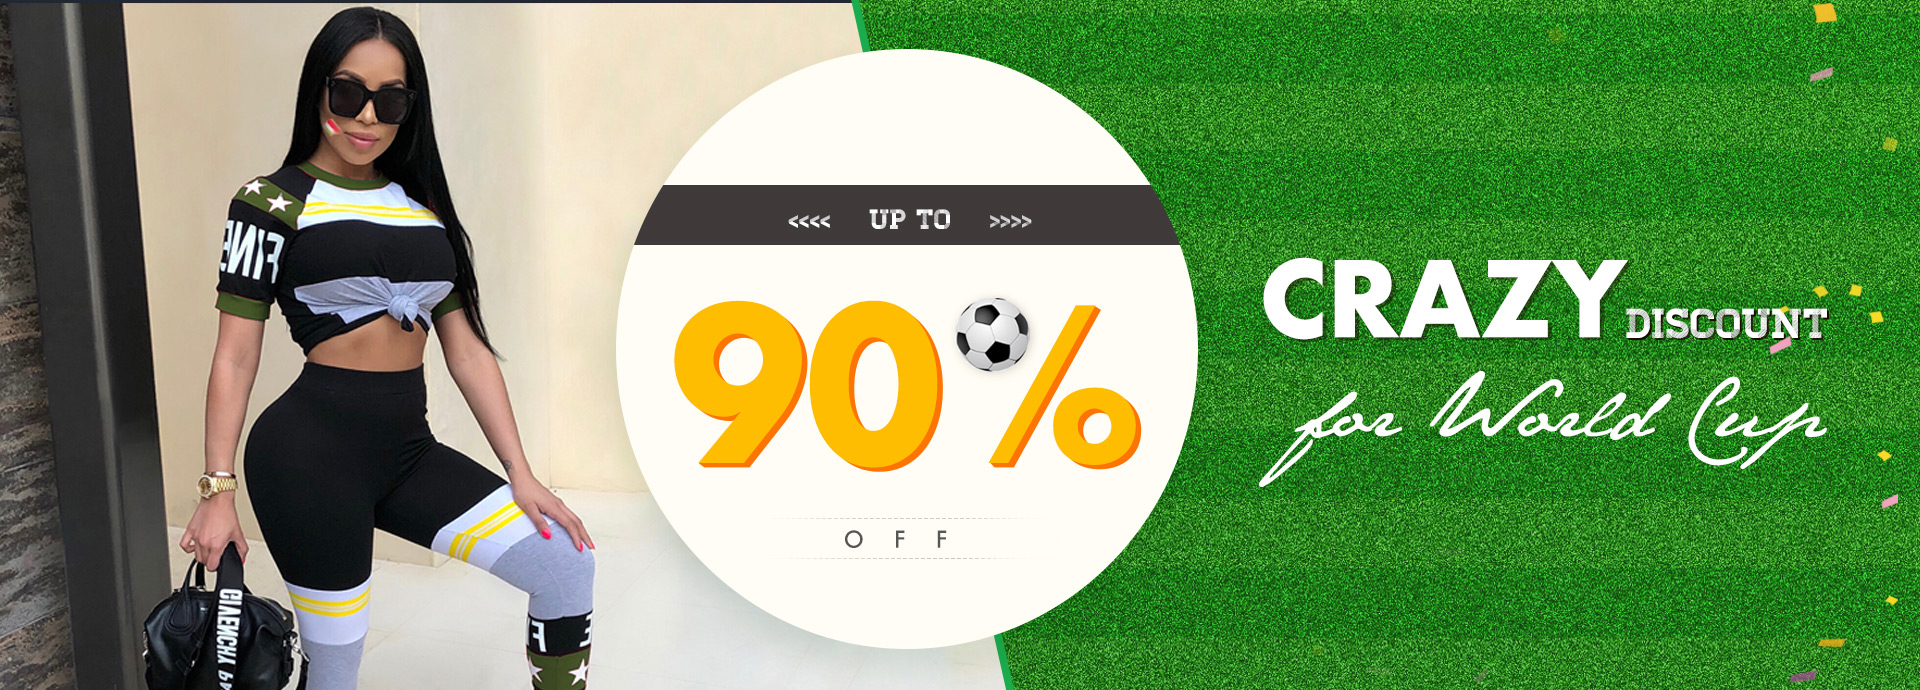 Crazy Discount for World Cup